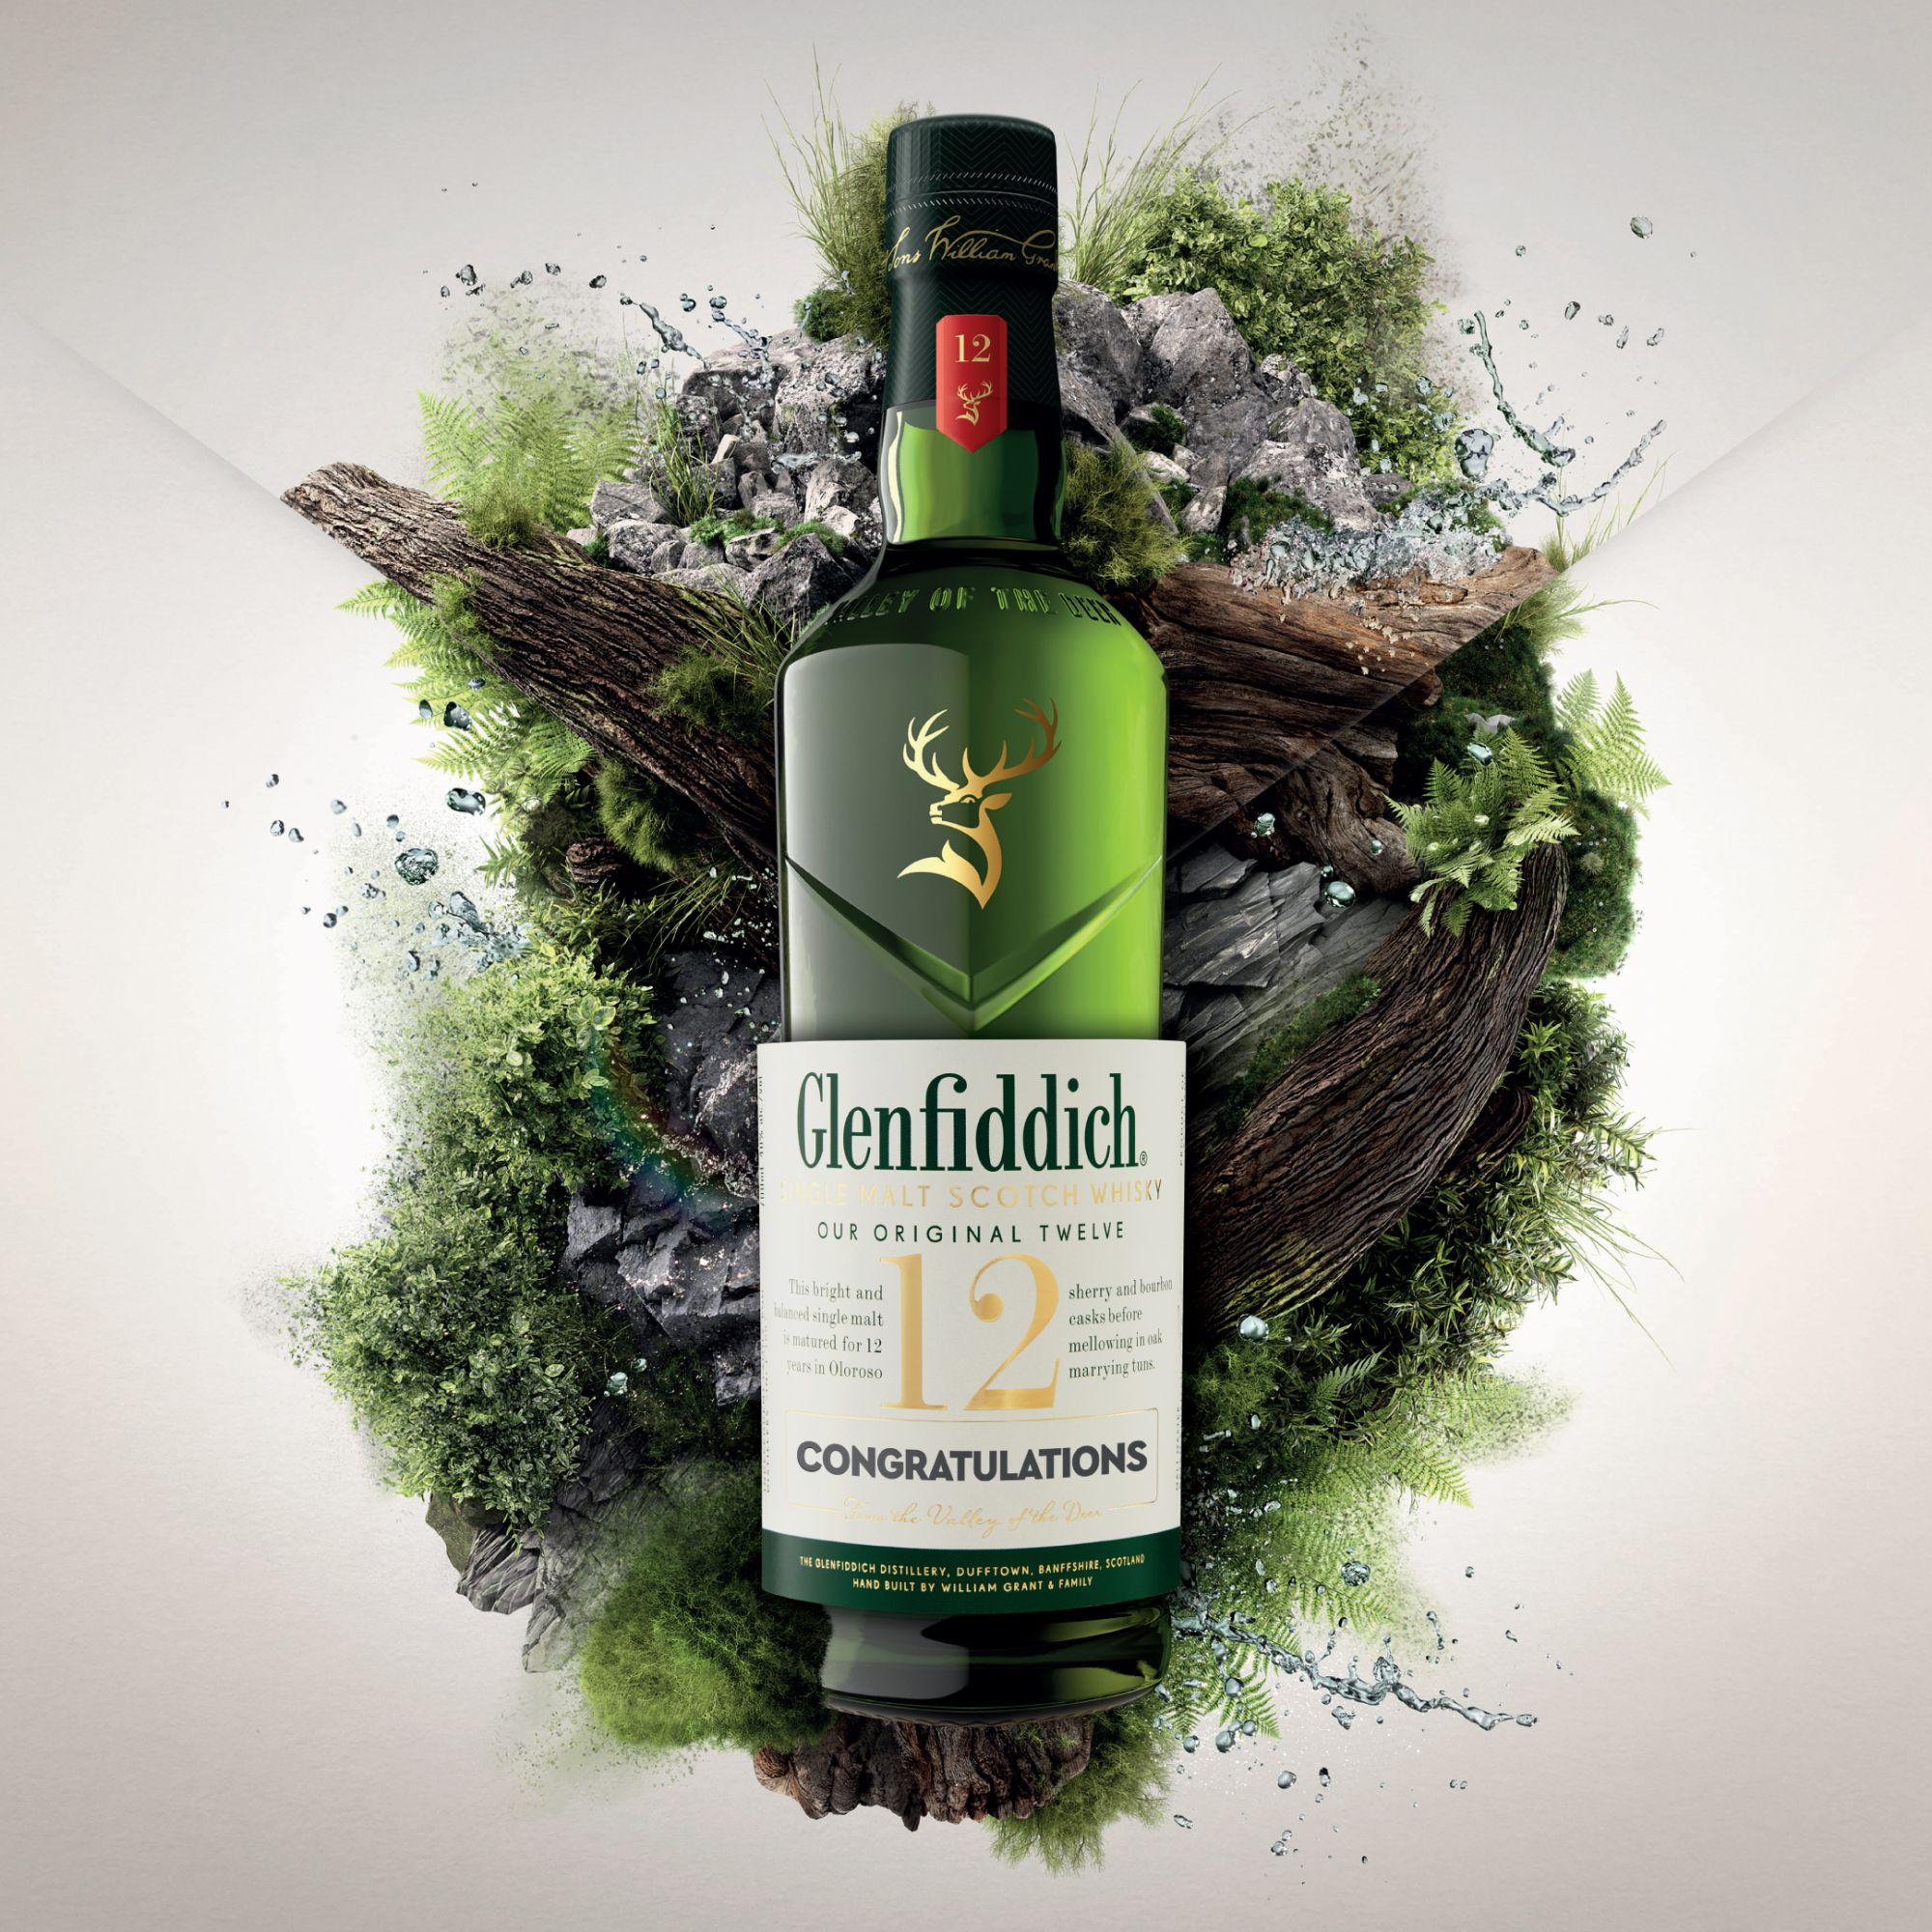 Personalise Your Glenfiddich Bottle Label To Celebrate Great Moments